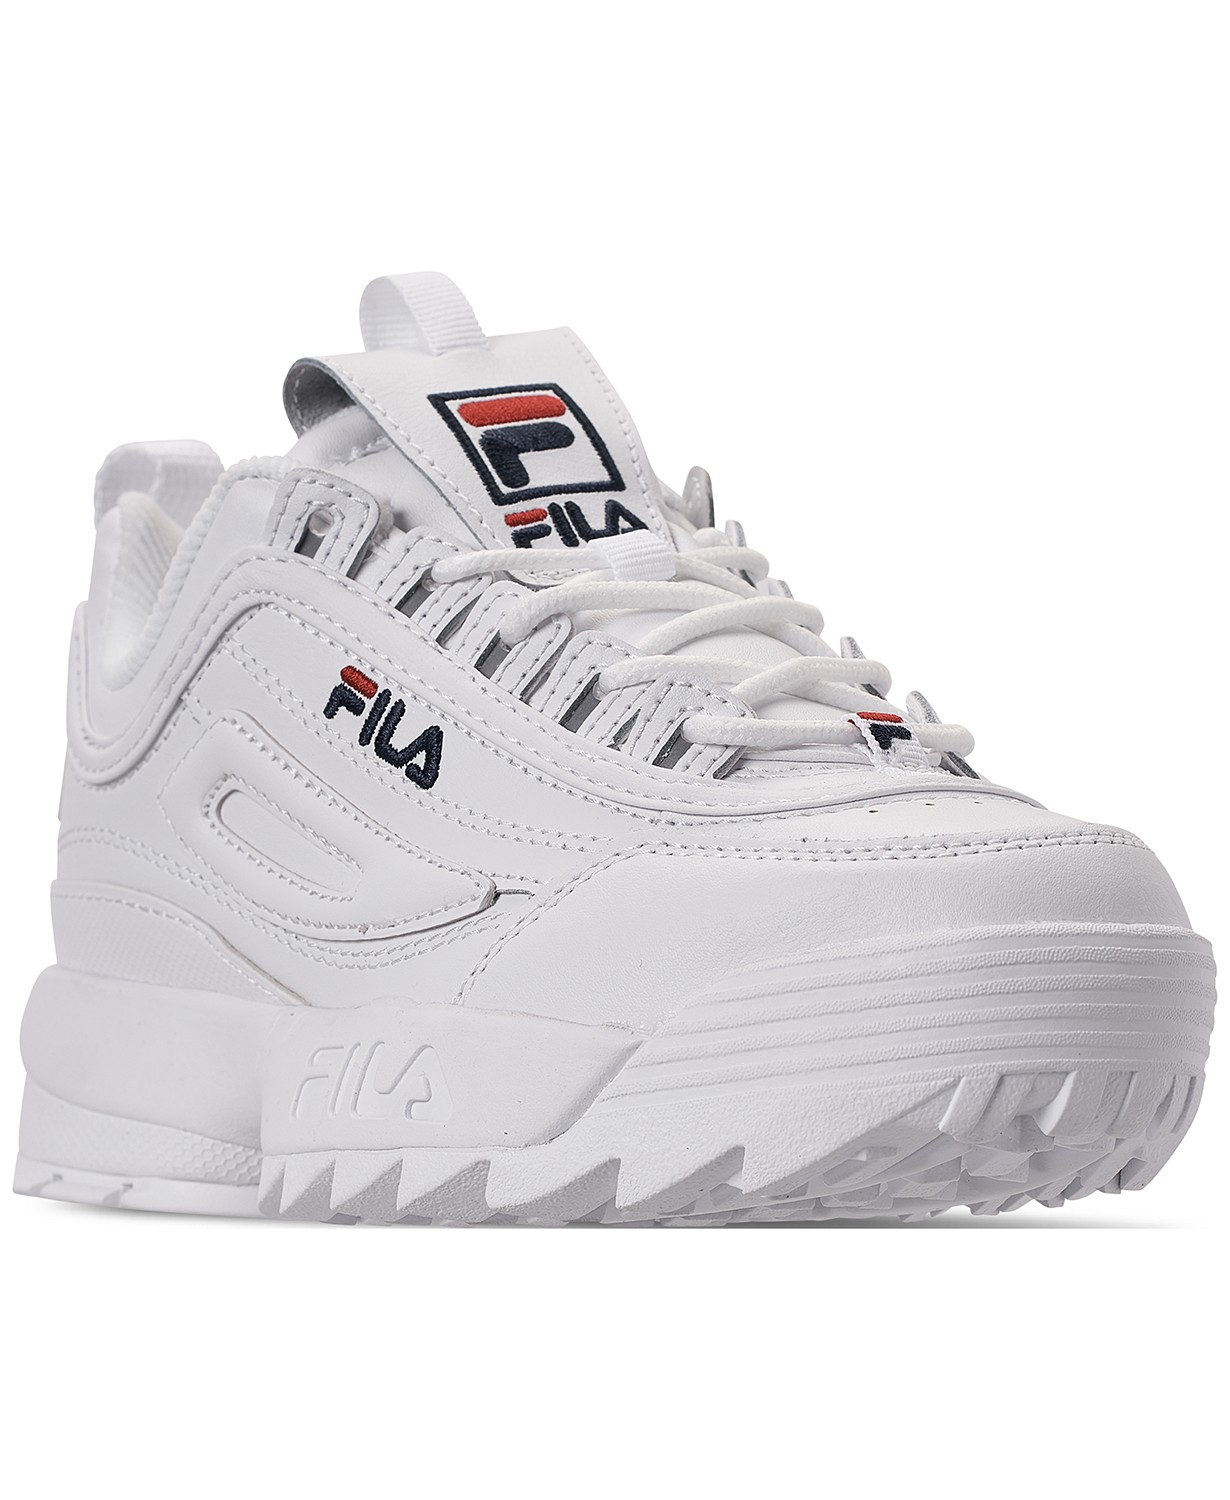 Fila Disrupter Premium Dad Sneakers.jpg